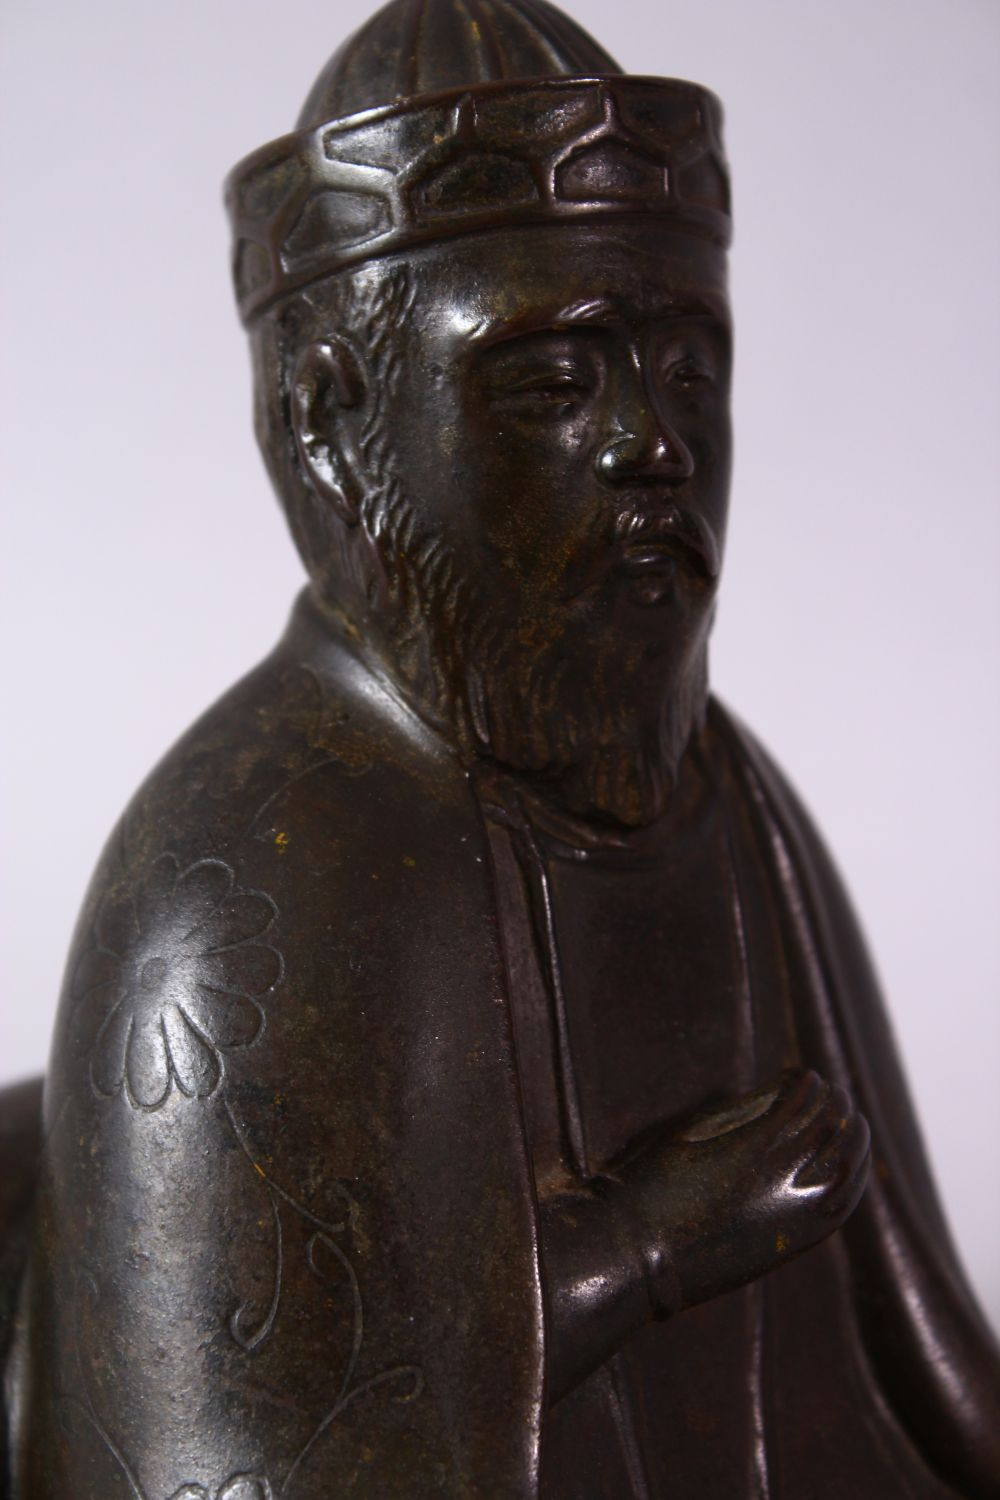 AN 18TH/19TH CENTURY BRONZE SEATED FIGURE OF A SCHOLAR, on a square base, 17cm high. - Image 3 of 6